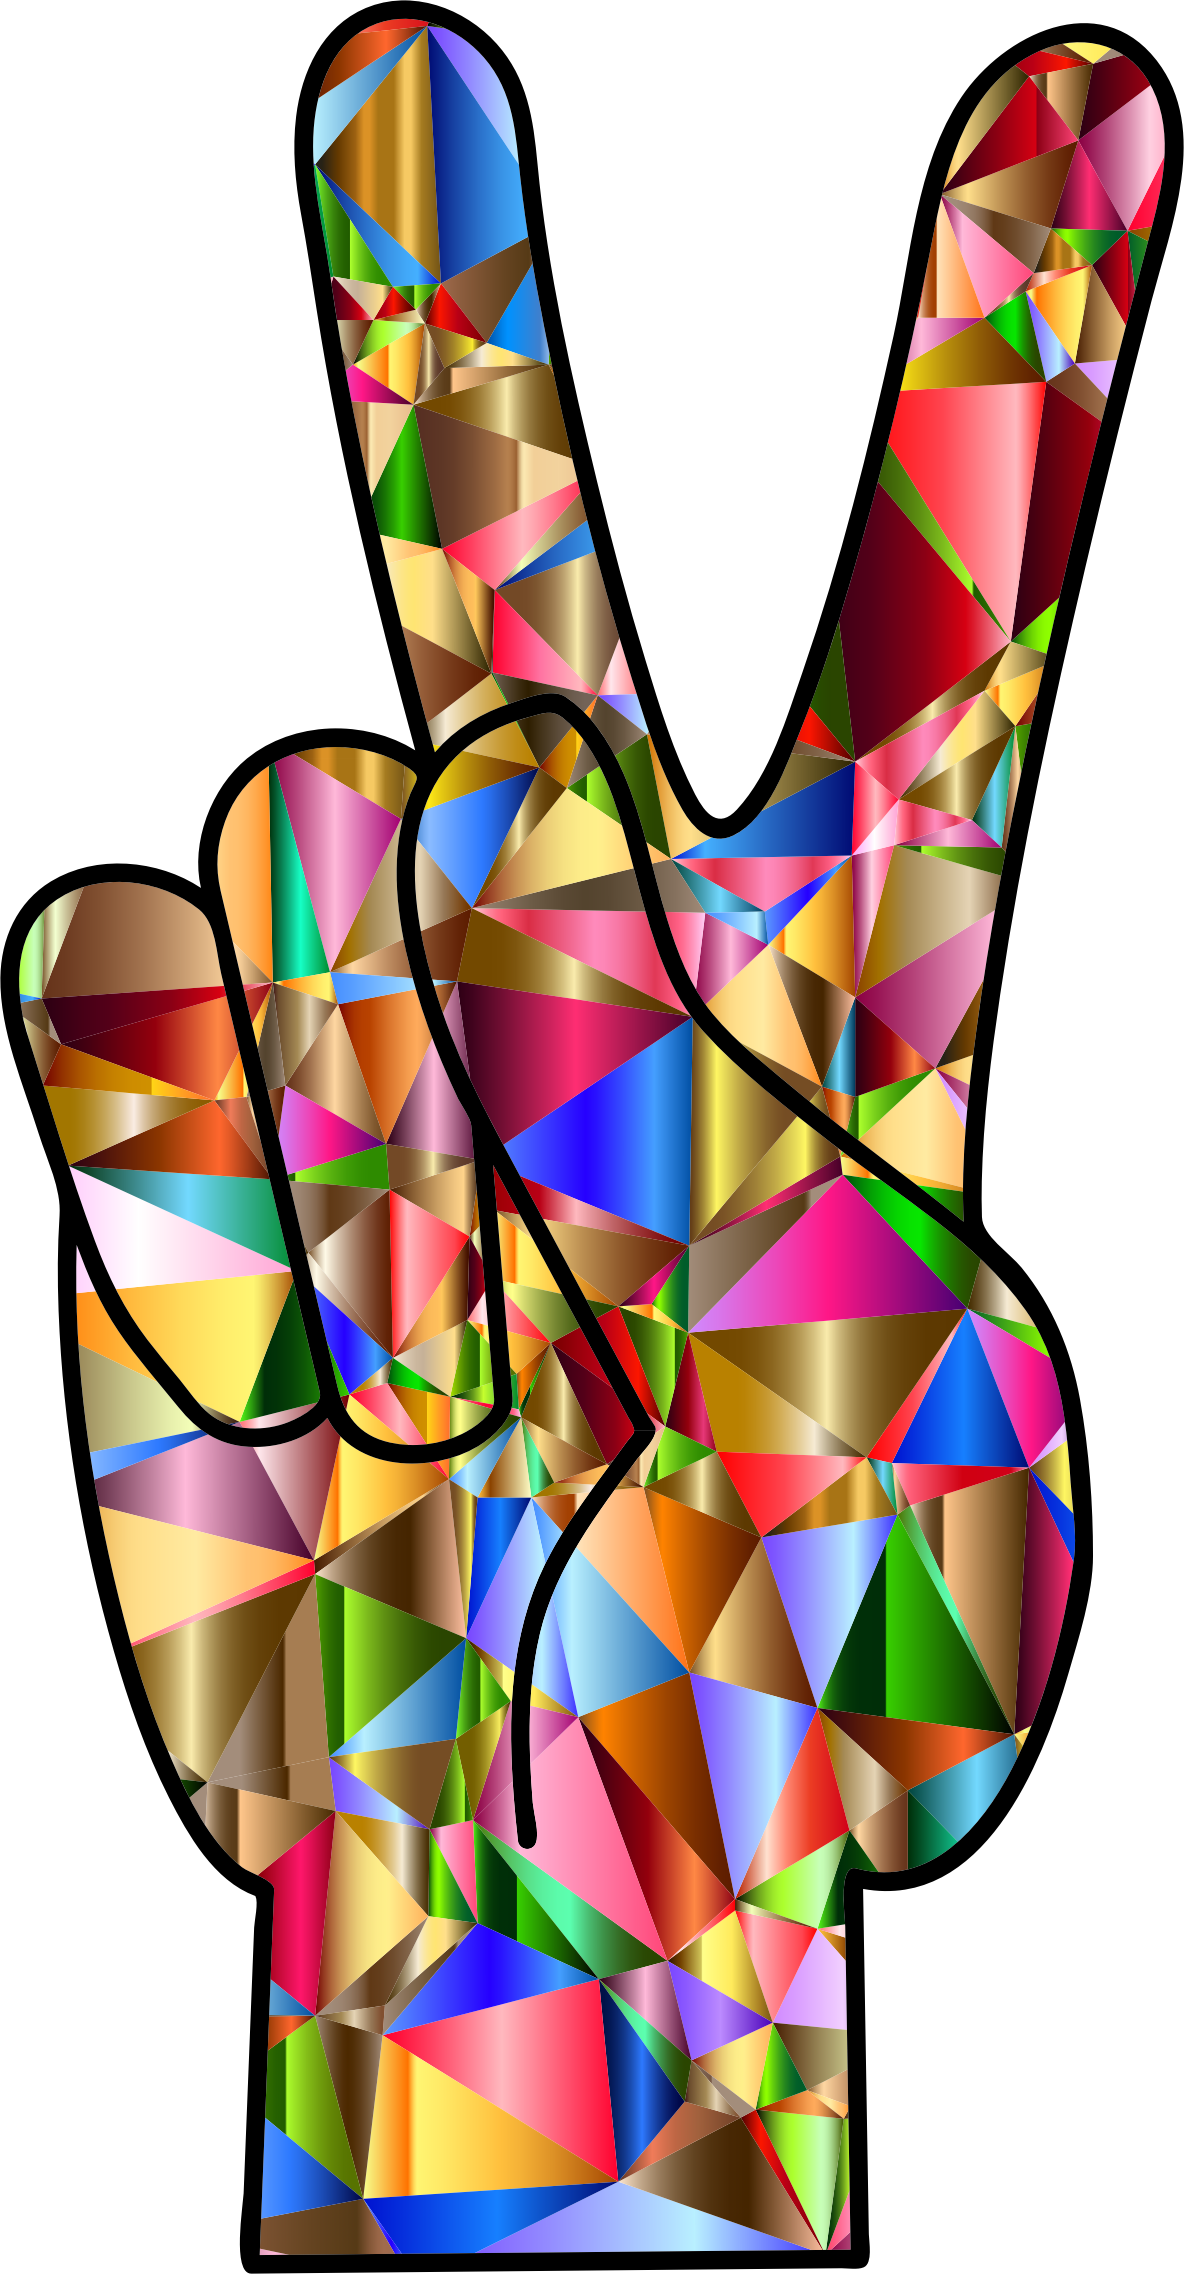 Peace hand sign png. Chromatic low poly icons